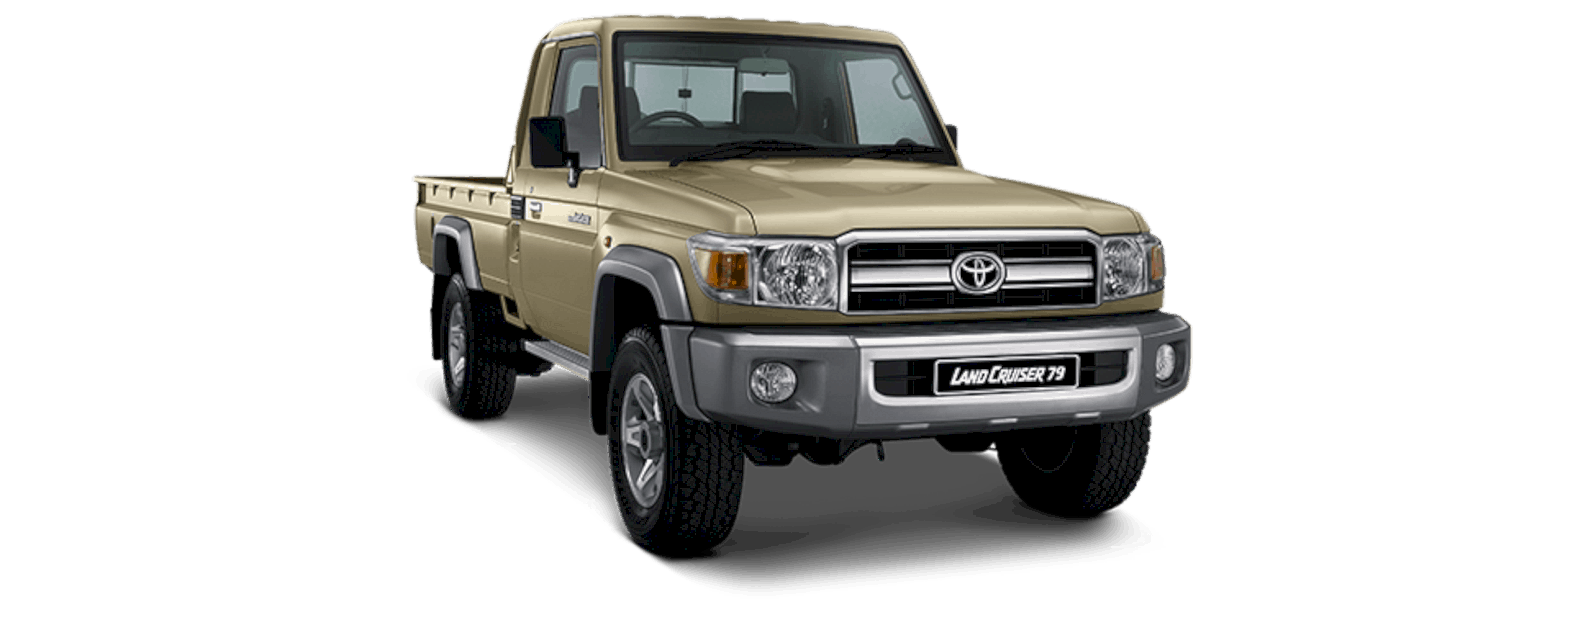 Toyota Land Cruiser 70 Series Namib 4